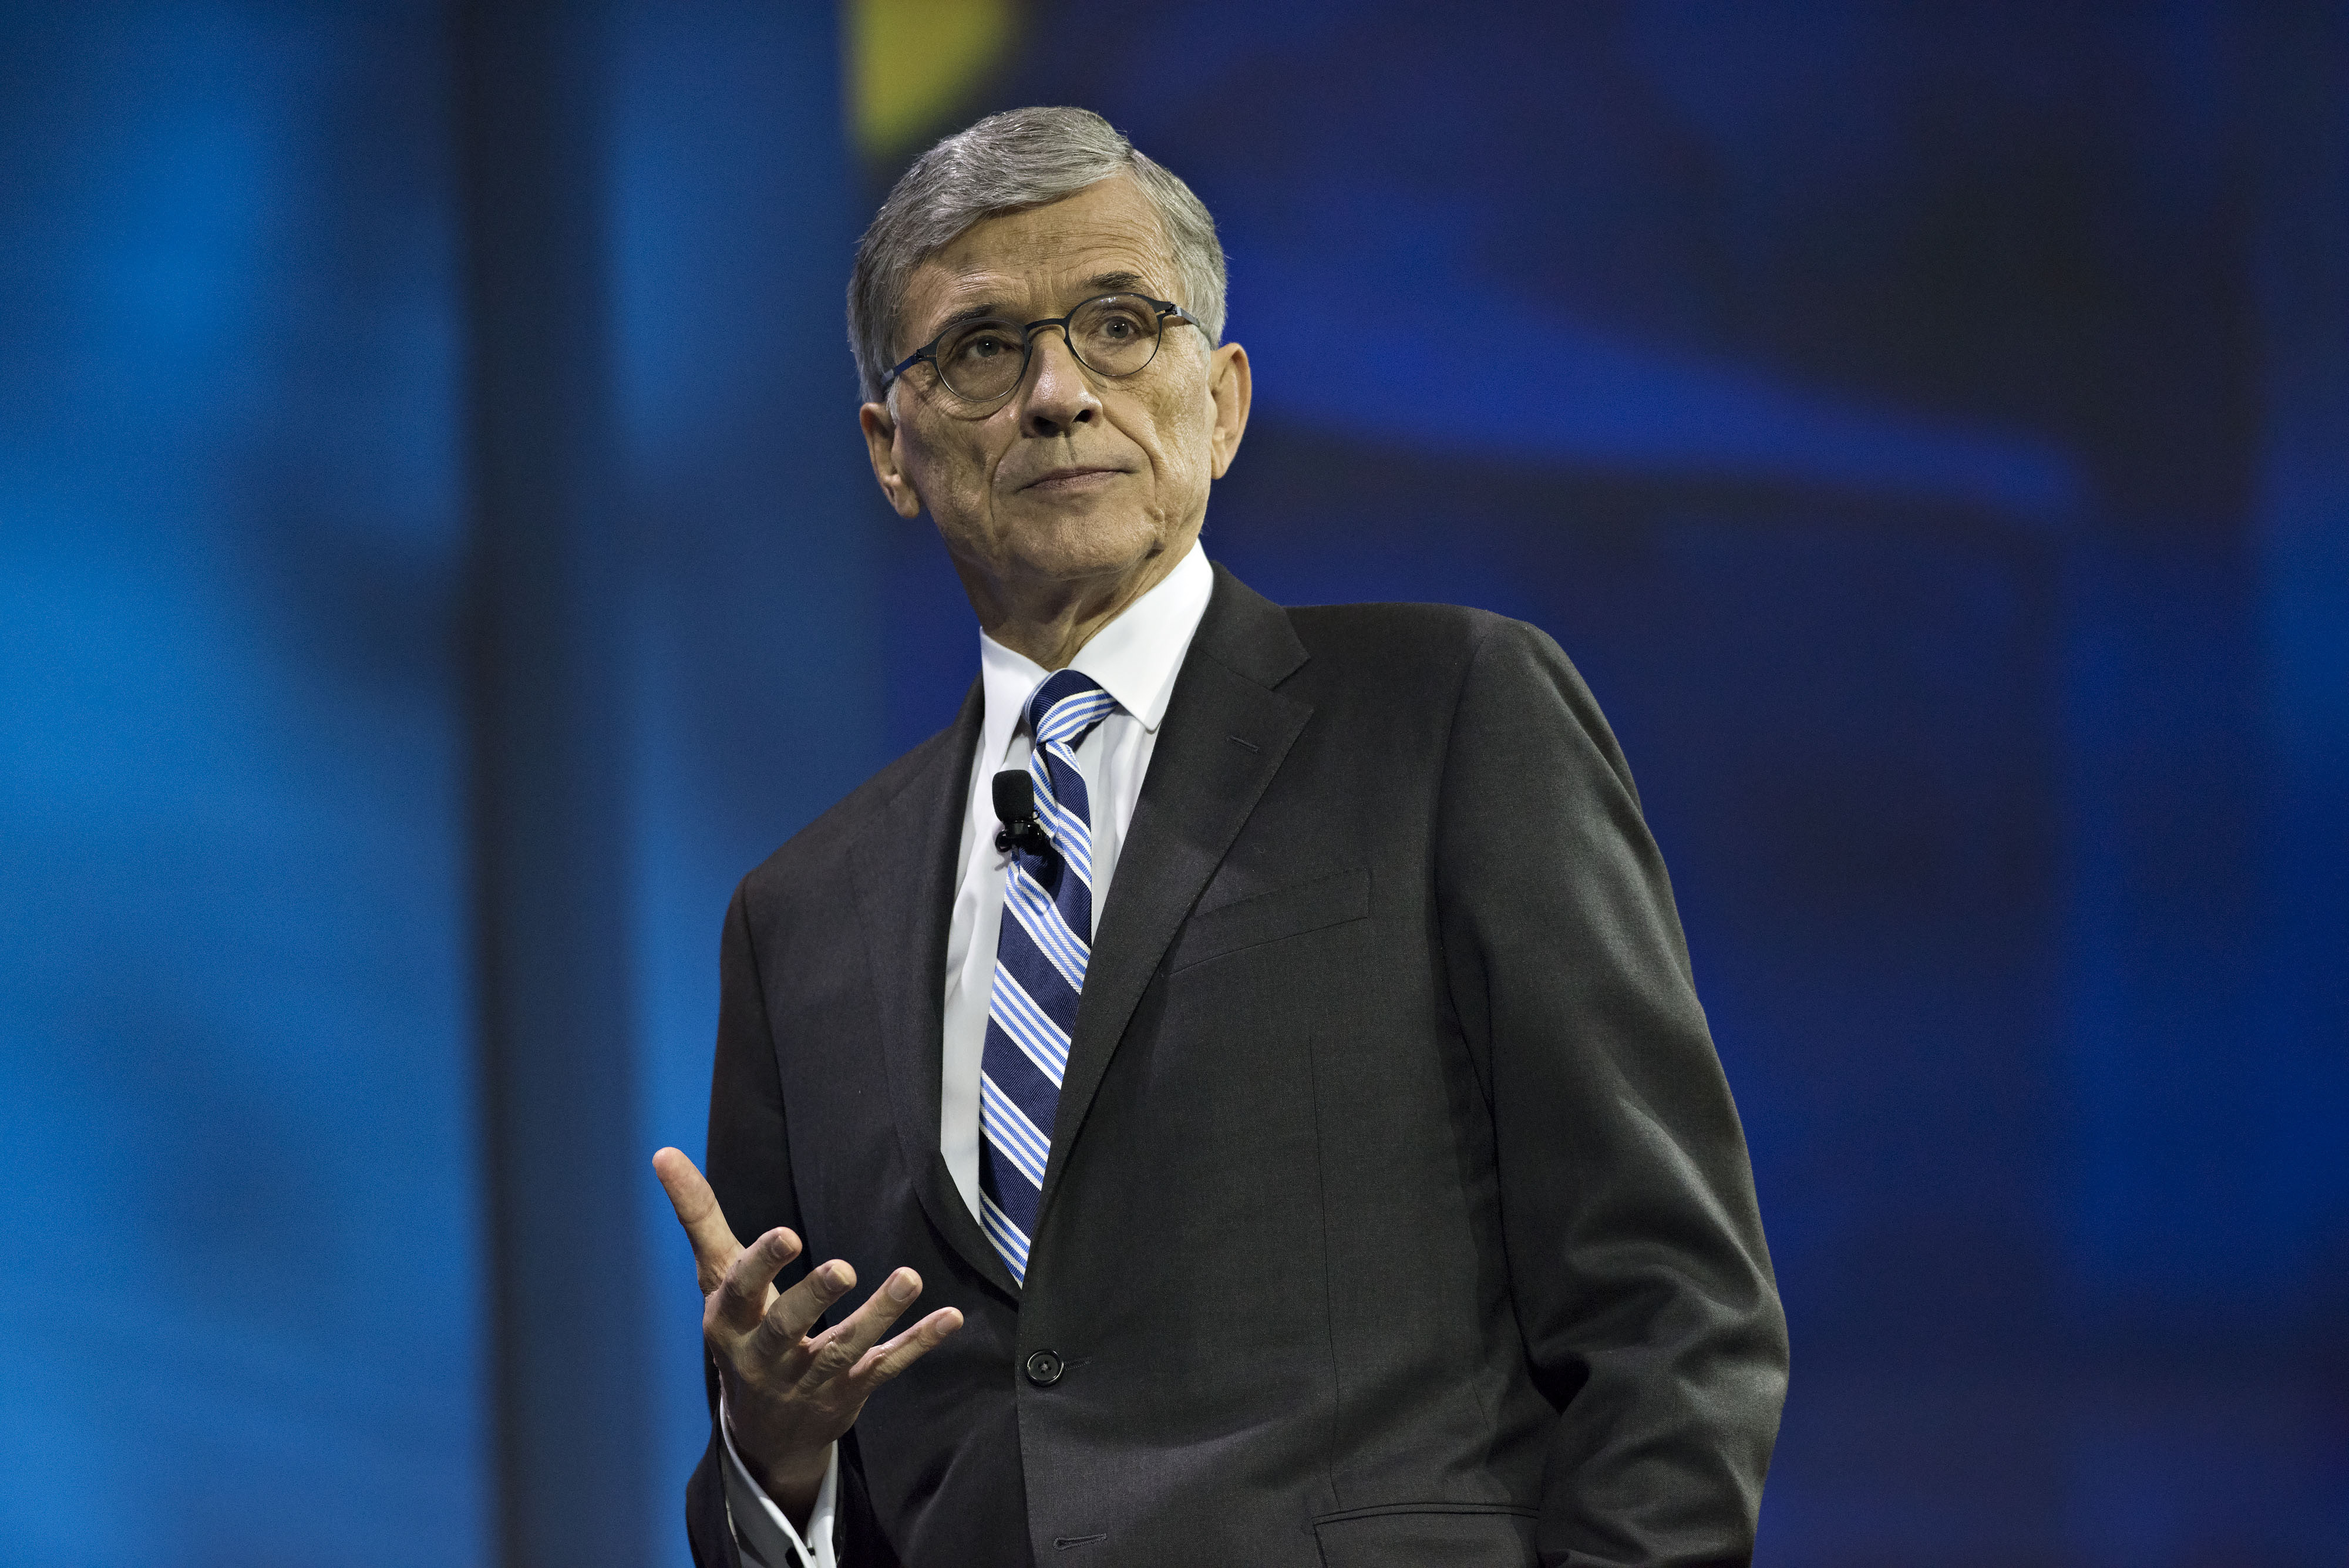 Thomas  Tom  Wheeler, chairman of the U.S. Federal Communications Commission (FCC), speaks at INTX: The Internet & Television Expo in Chicago, Illinois, U.S., on Wednesday, May 6, 2015.